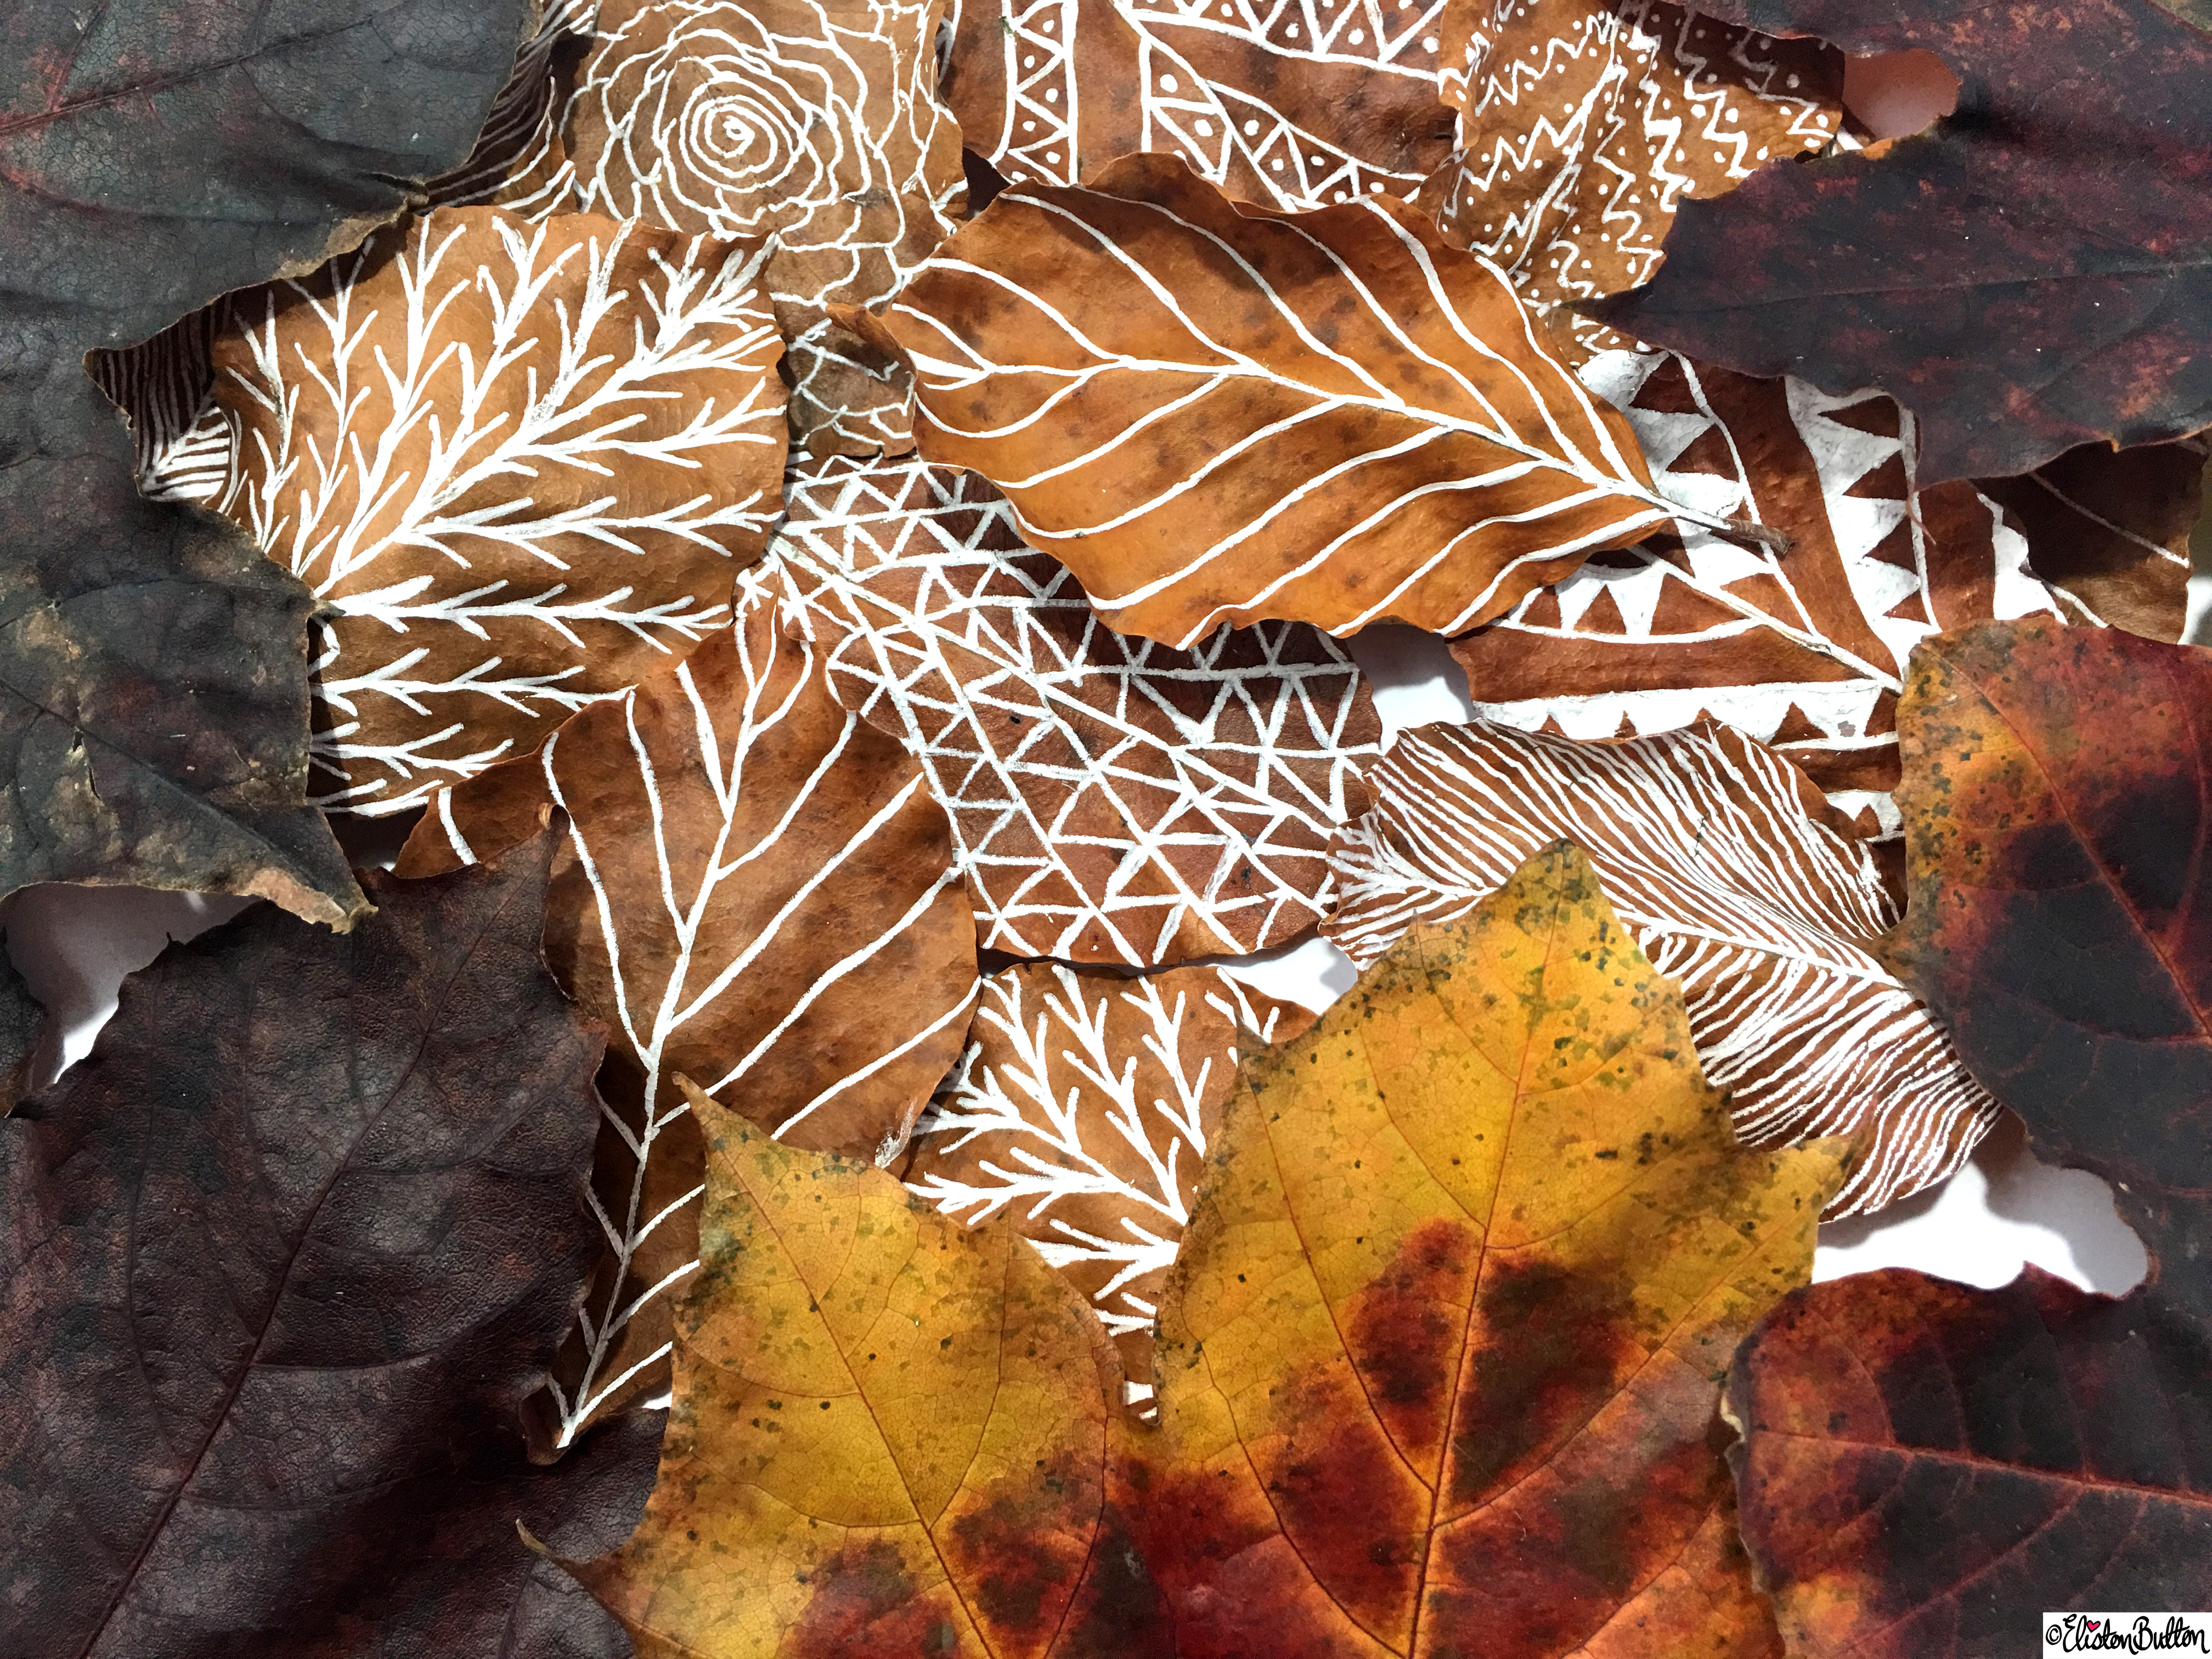 Illustrated Leaves amongst Natural Autumn Leaves - Workspace Wednesday - Autumn Leaf Art at www.elistonbutton.com - Eliston Button - That Crafty Kid – Art, Design, Craft & Adventure.